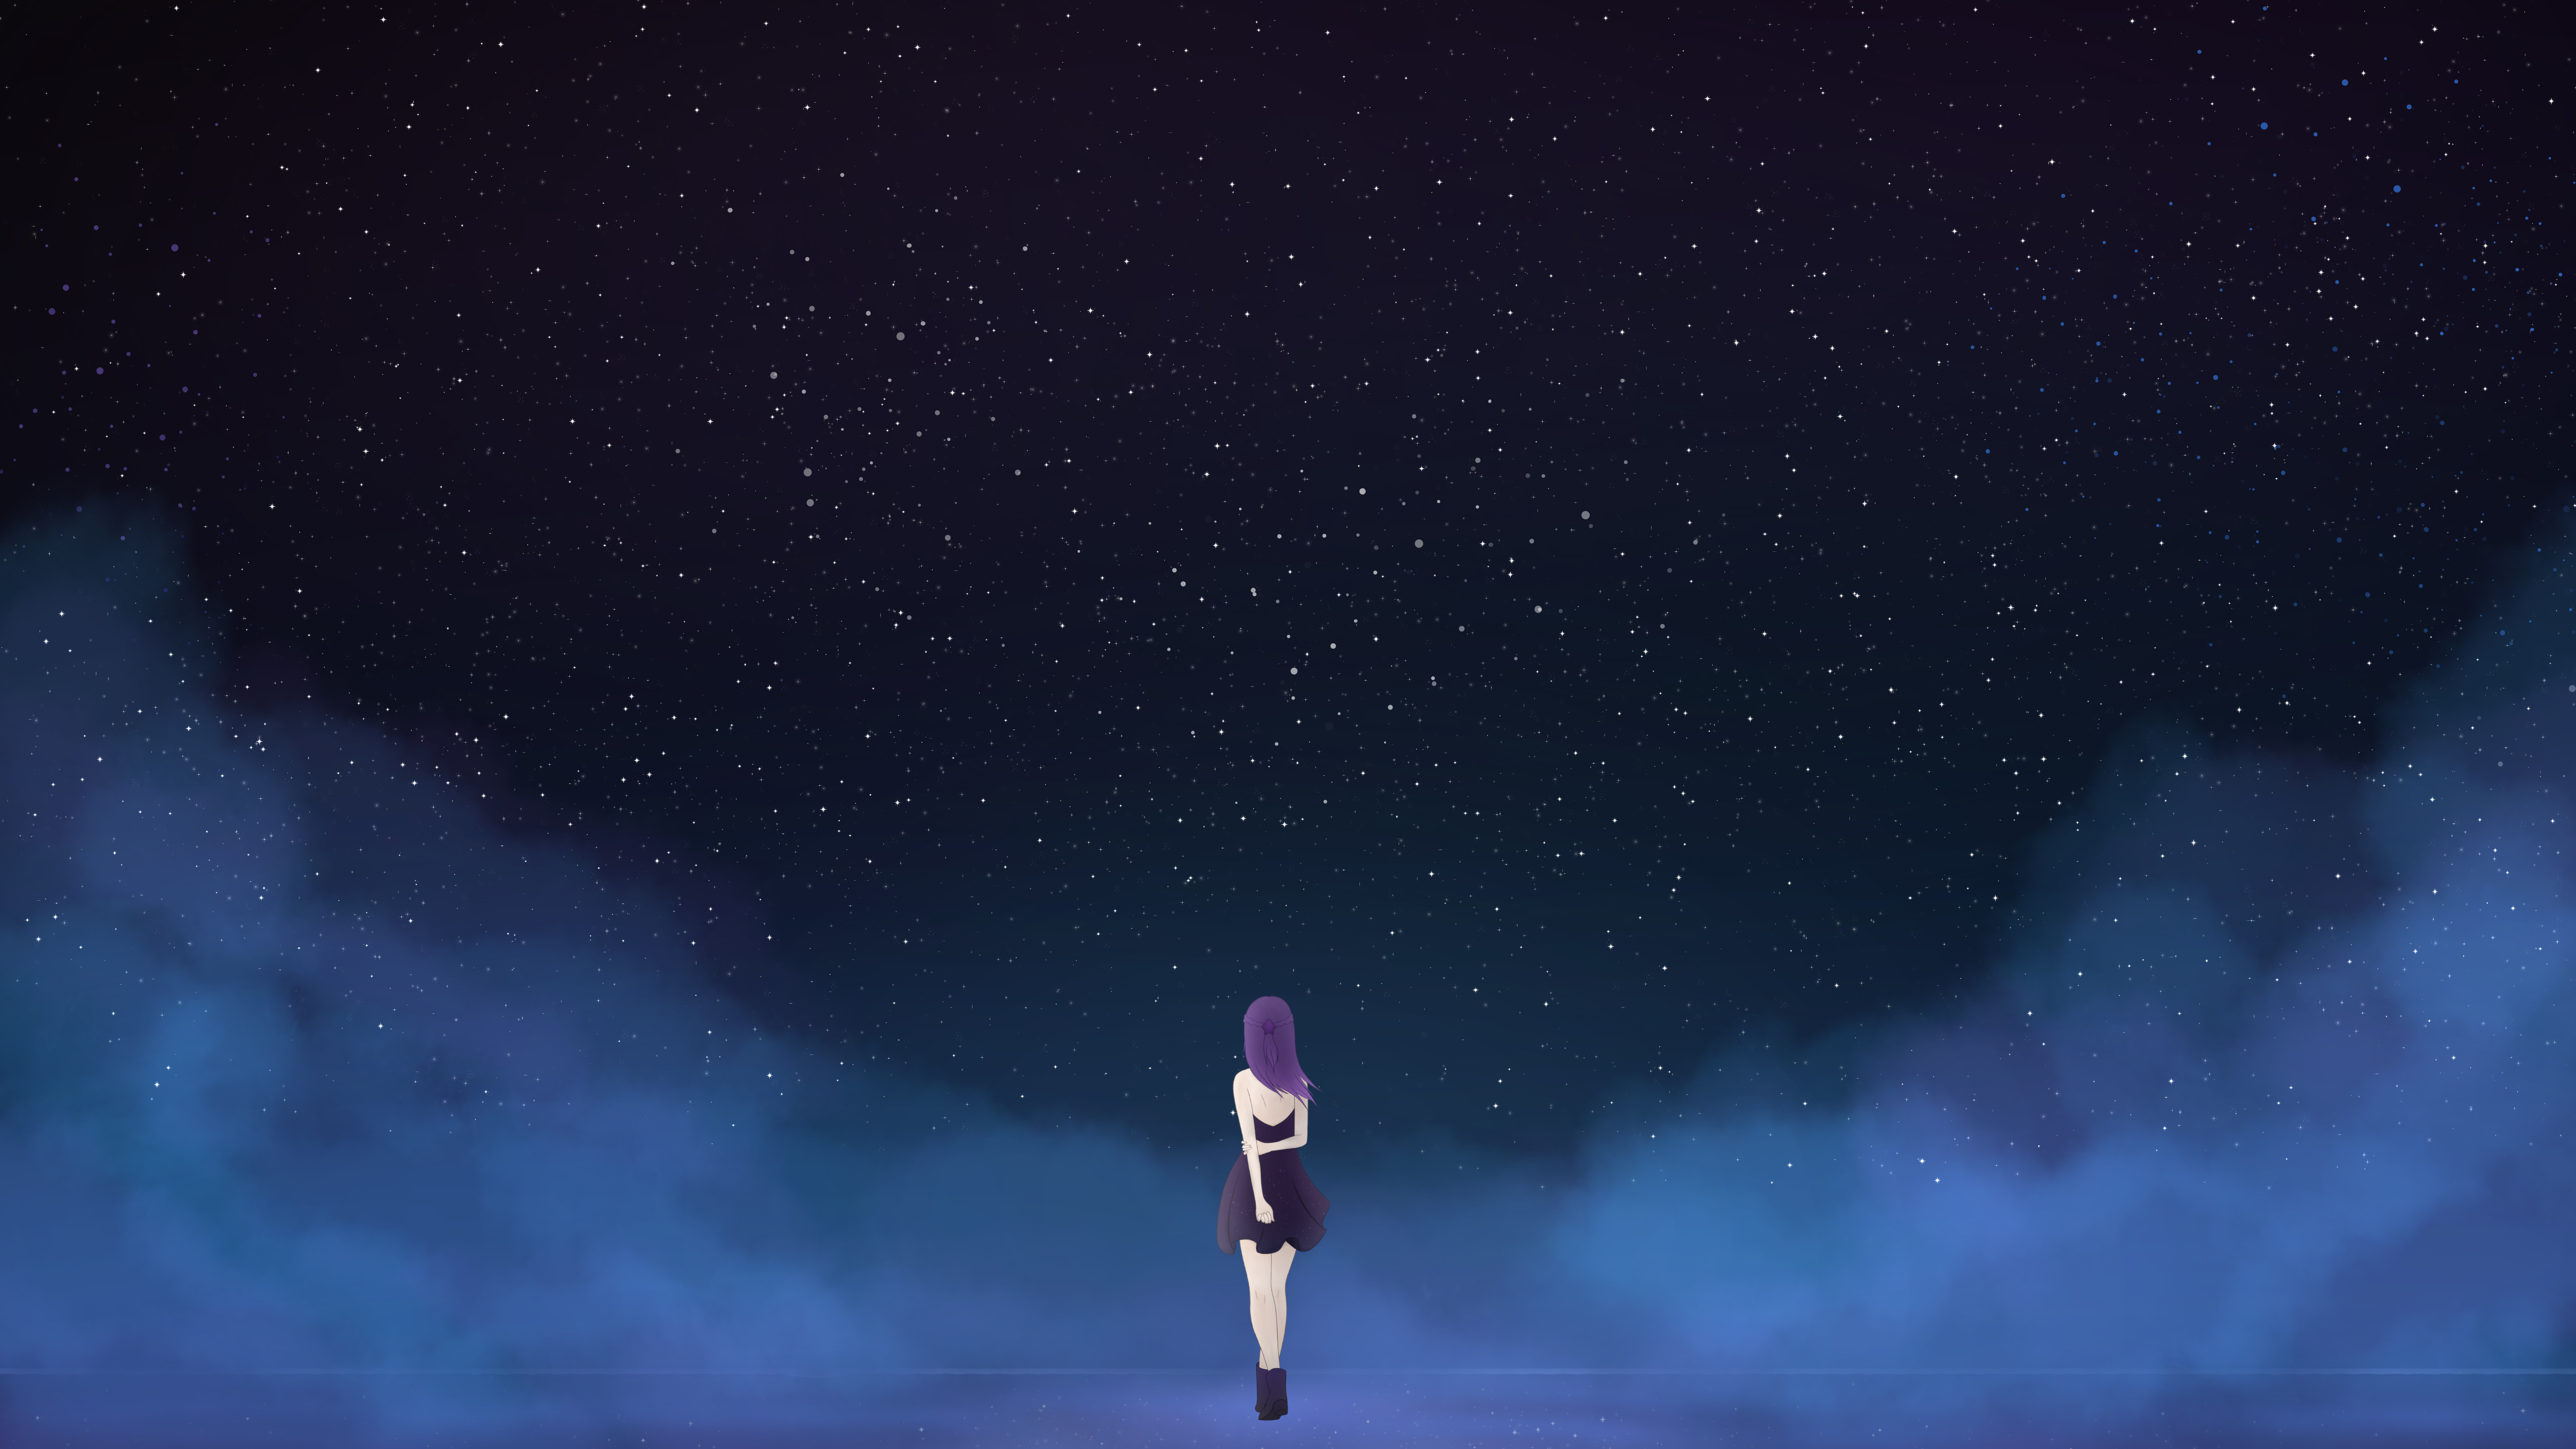 Lonely Girl Dream 4K 8K Wallpapers | HD